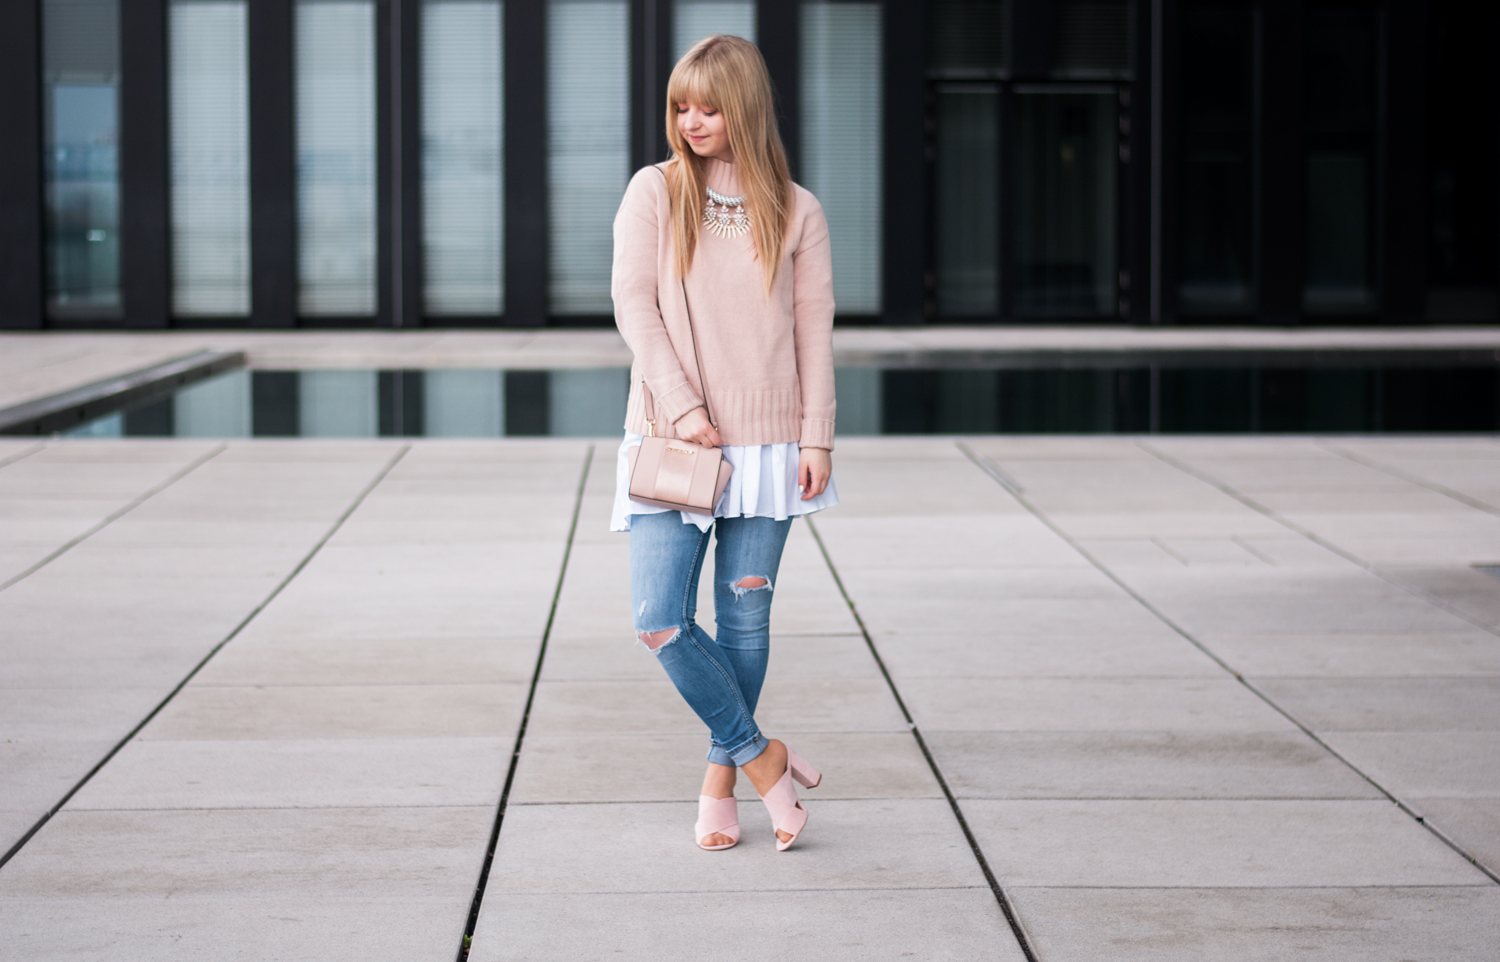 HOW TO WEAR: TURTLENECK SWEATER FOR SPRING